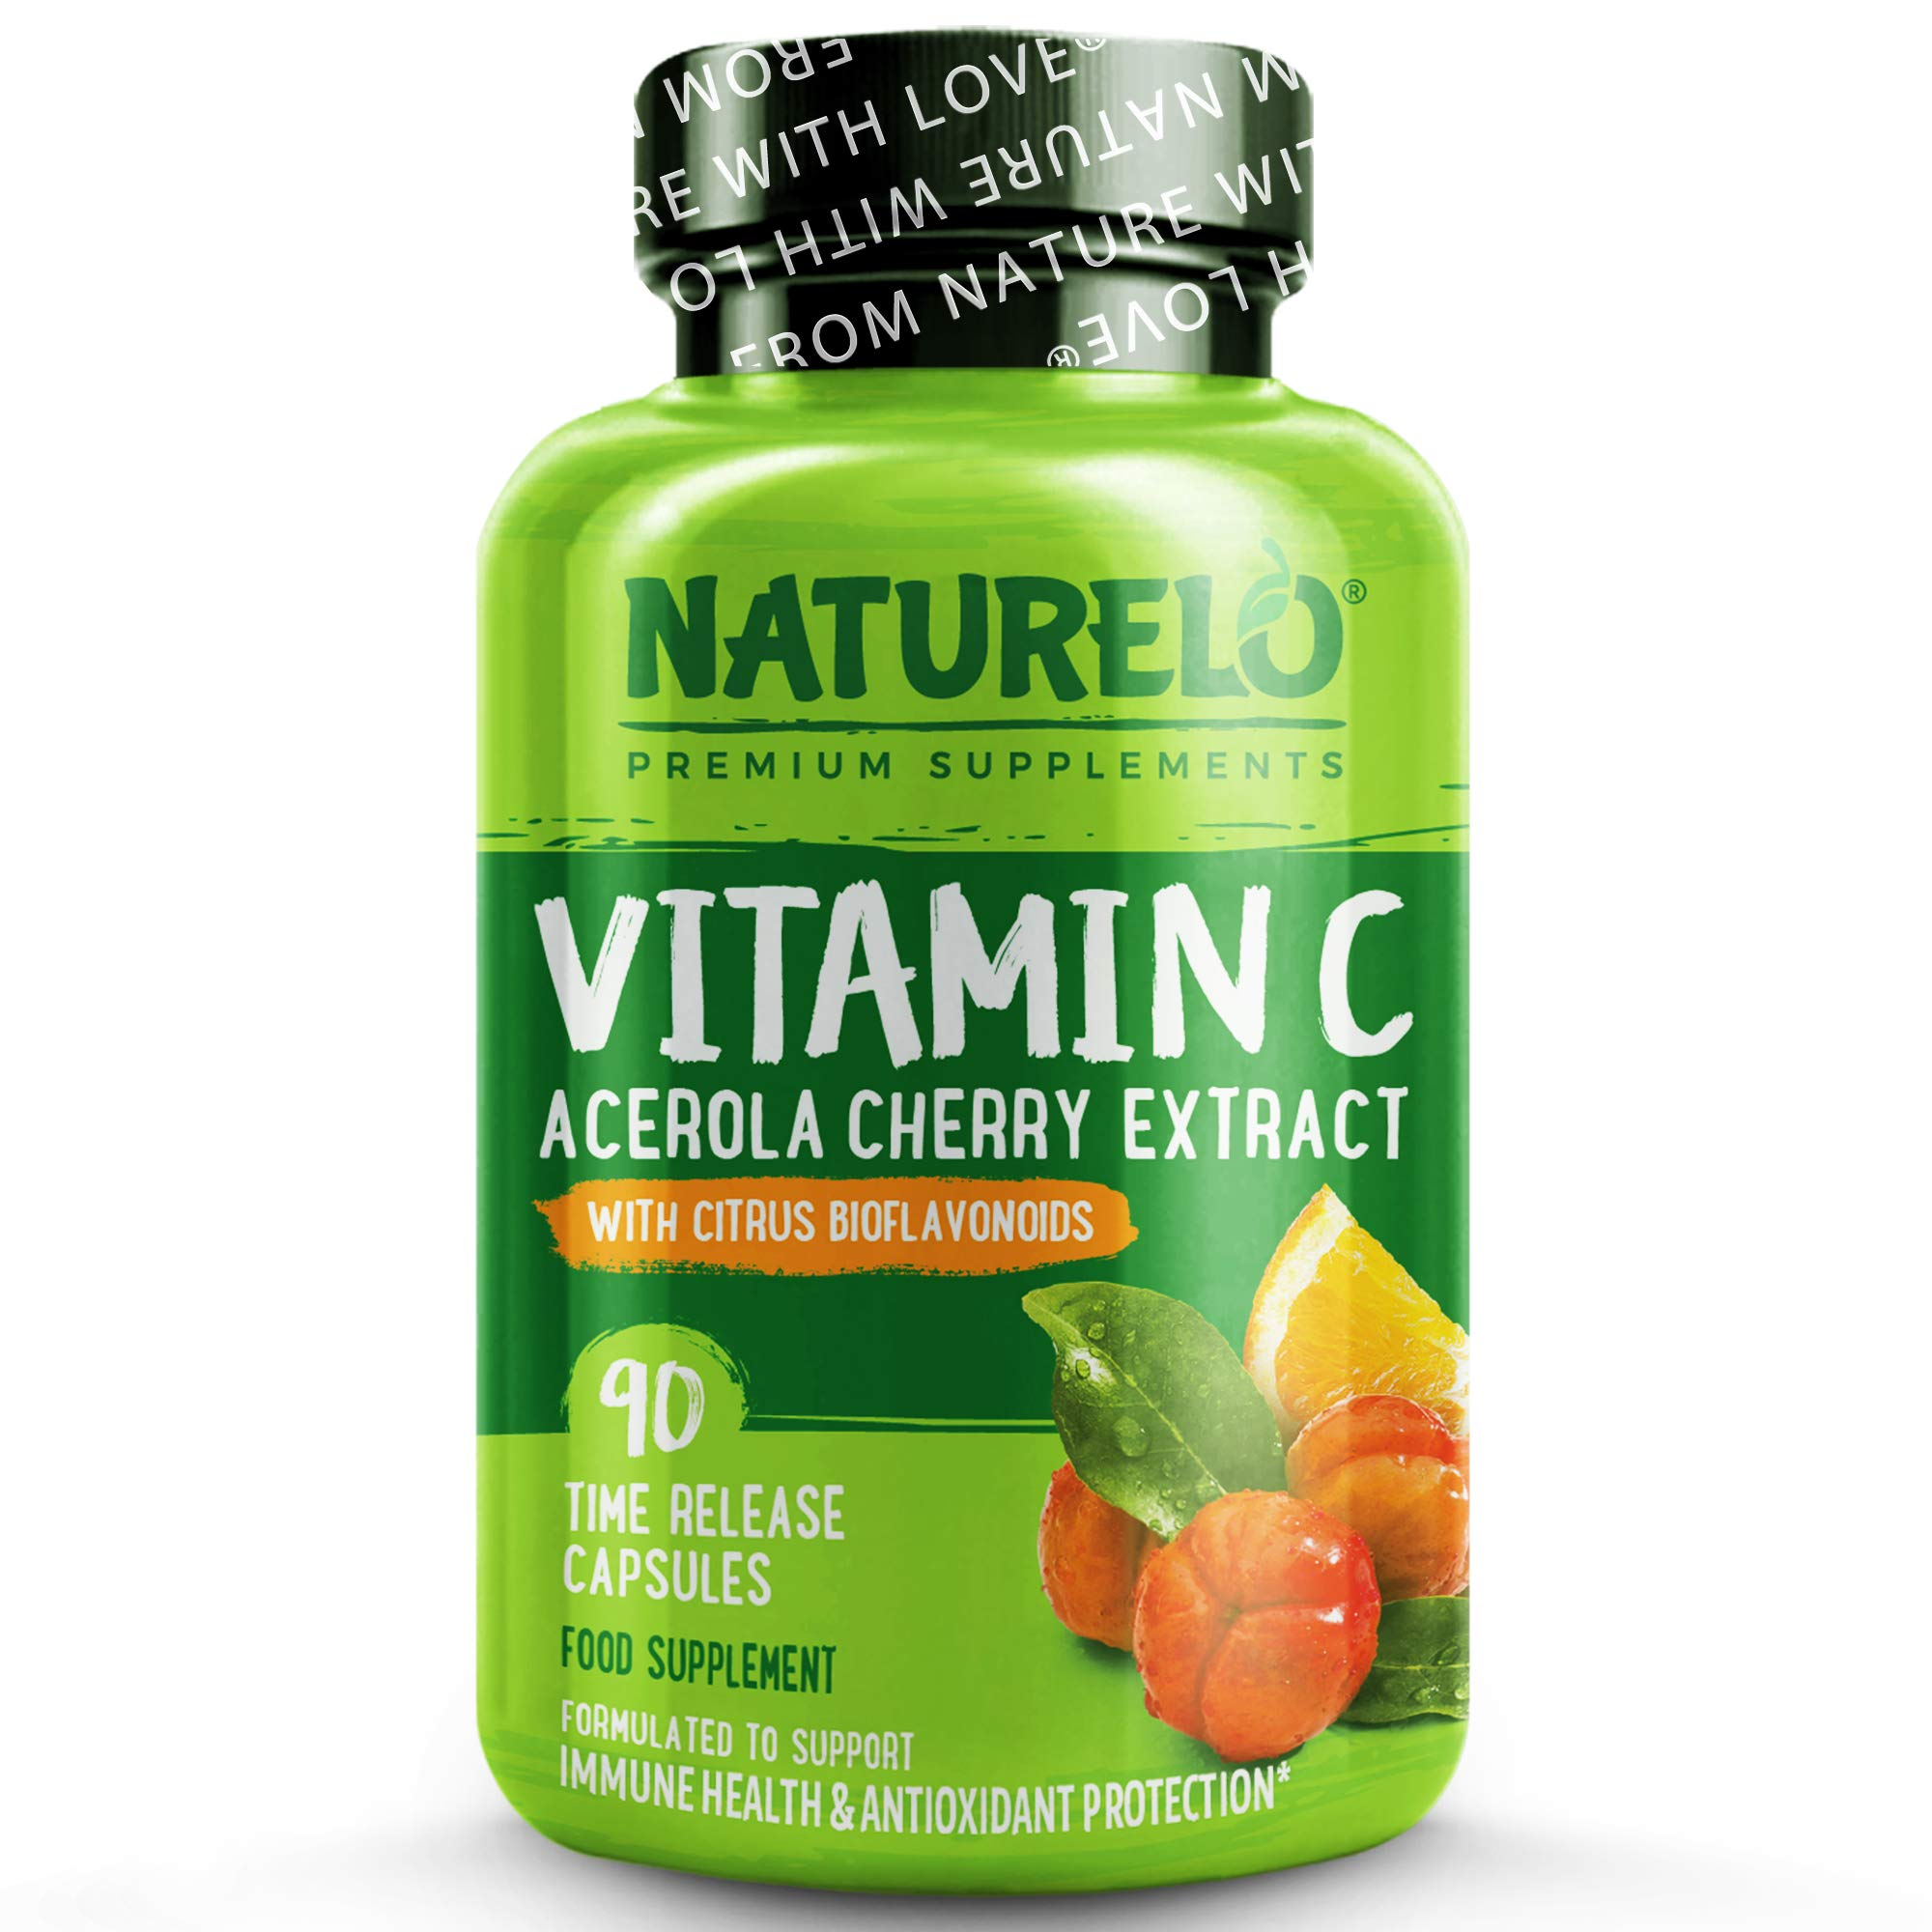 NATURELO Vitamin C - with Acerola Cherry Extract & Citrus Bioflavonoids - Helps Maintain Healthy Immunity - Non-GMO Whole Food Supplement - 500 mg - Slow Release - 90 Vegan Capsules | 3 Month Supply